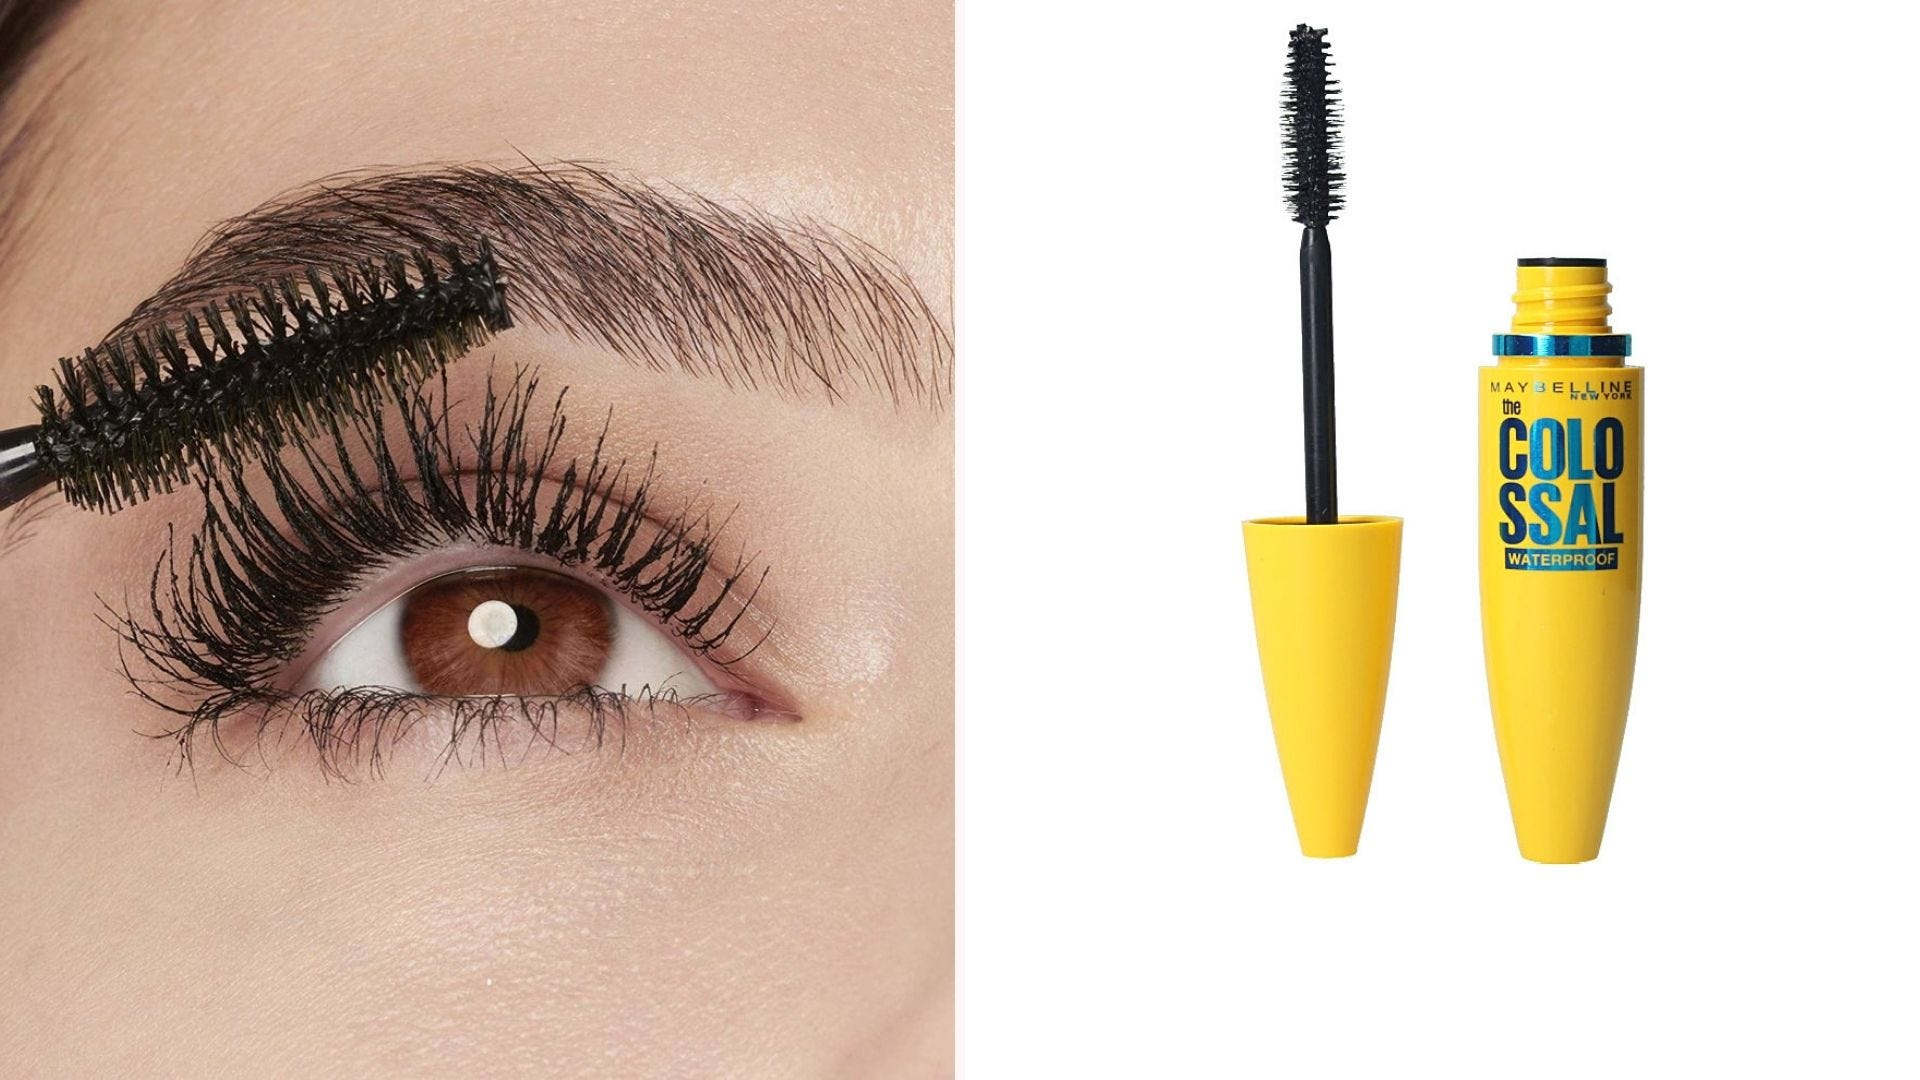 A wand applying mascara to an open brown eye; a yellow tube of mascara with the wand out